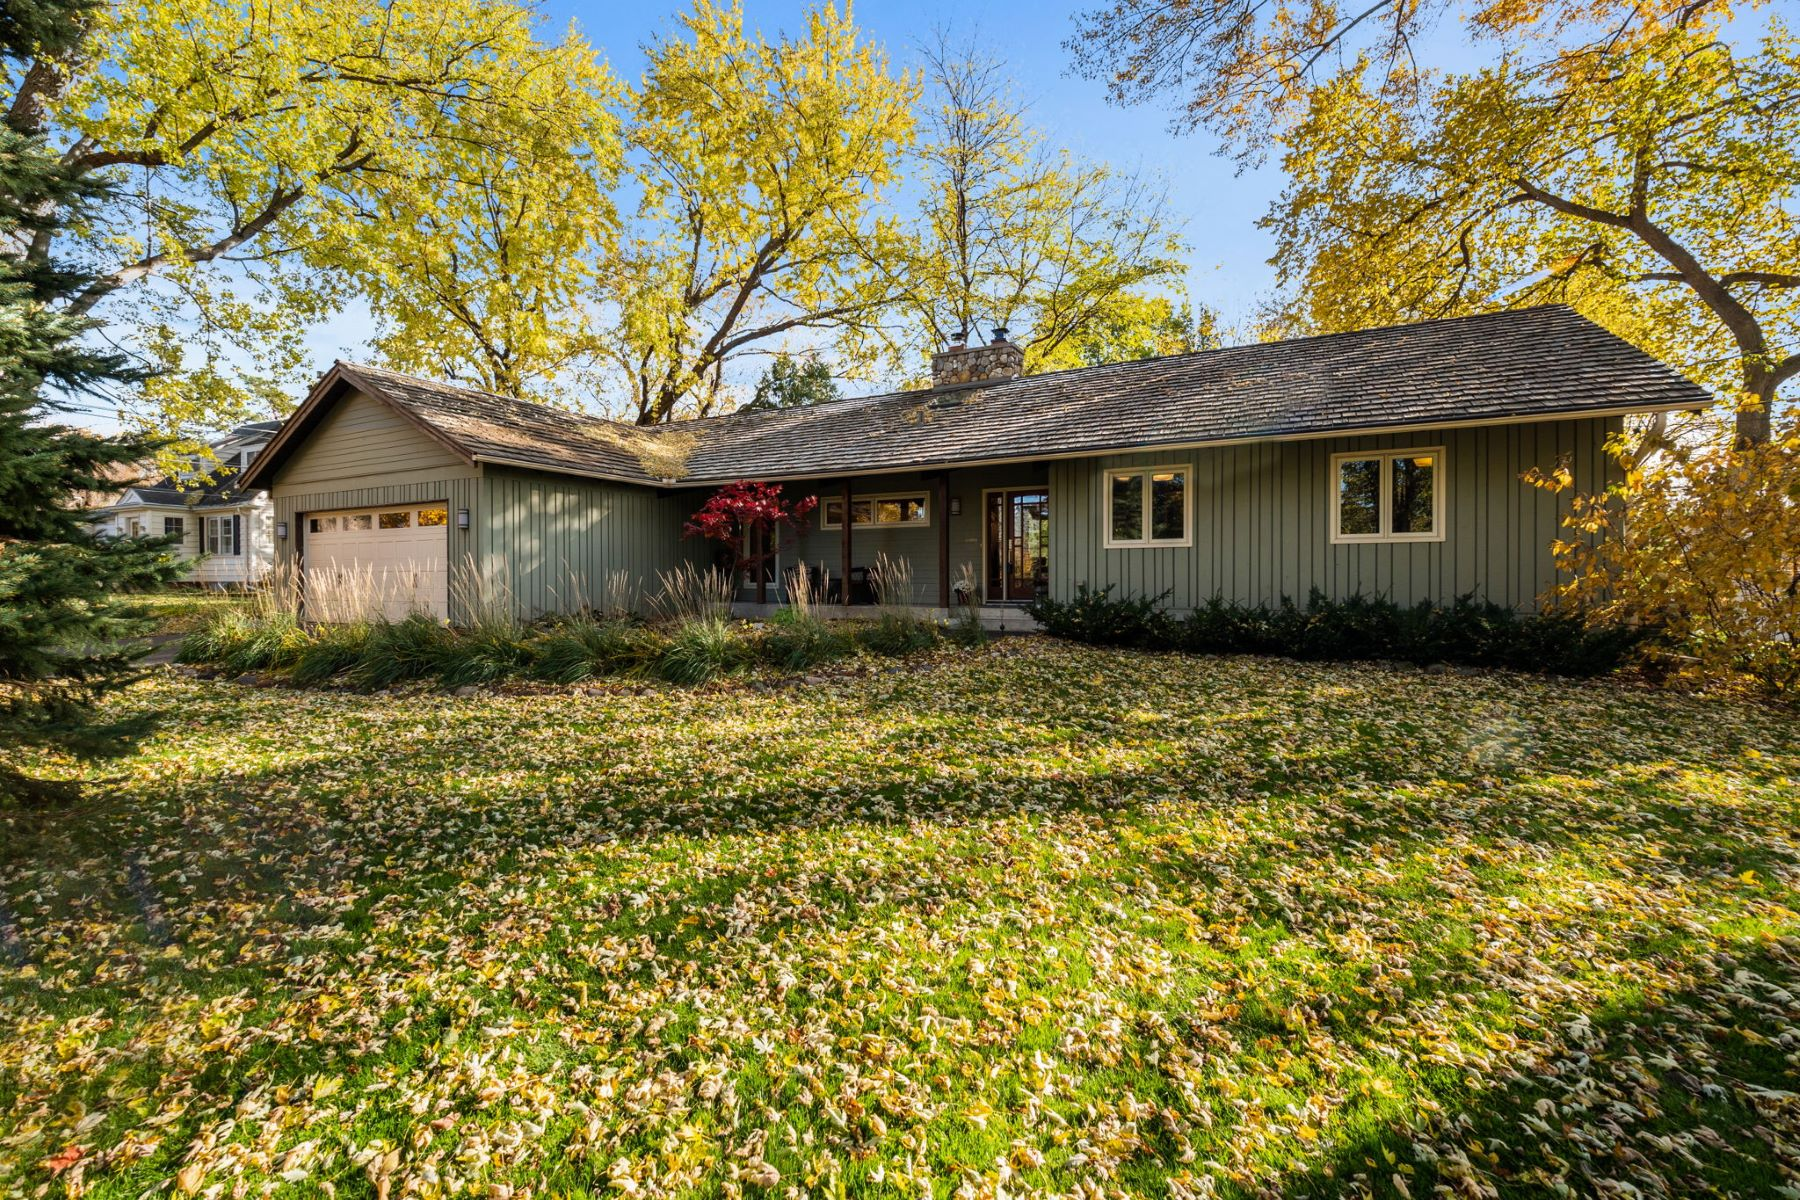 Single Family Homes for Sale at 13107 Inverness Road Minnetonka, Minnesota 55305 United States